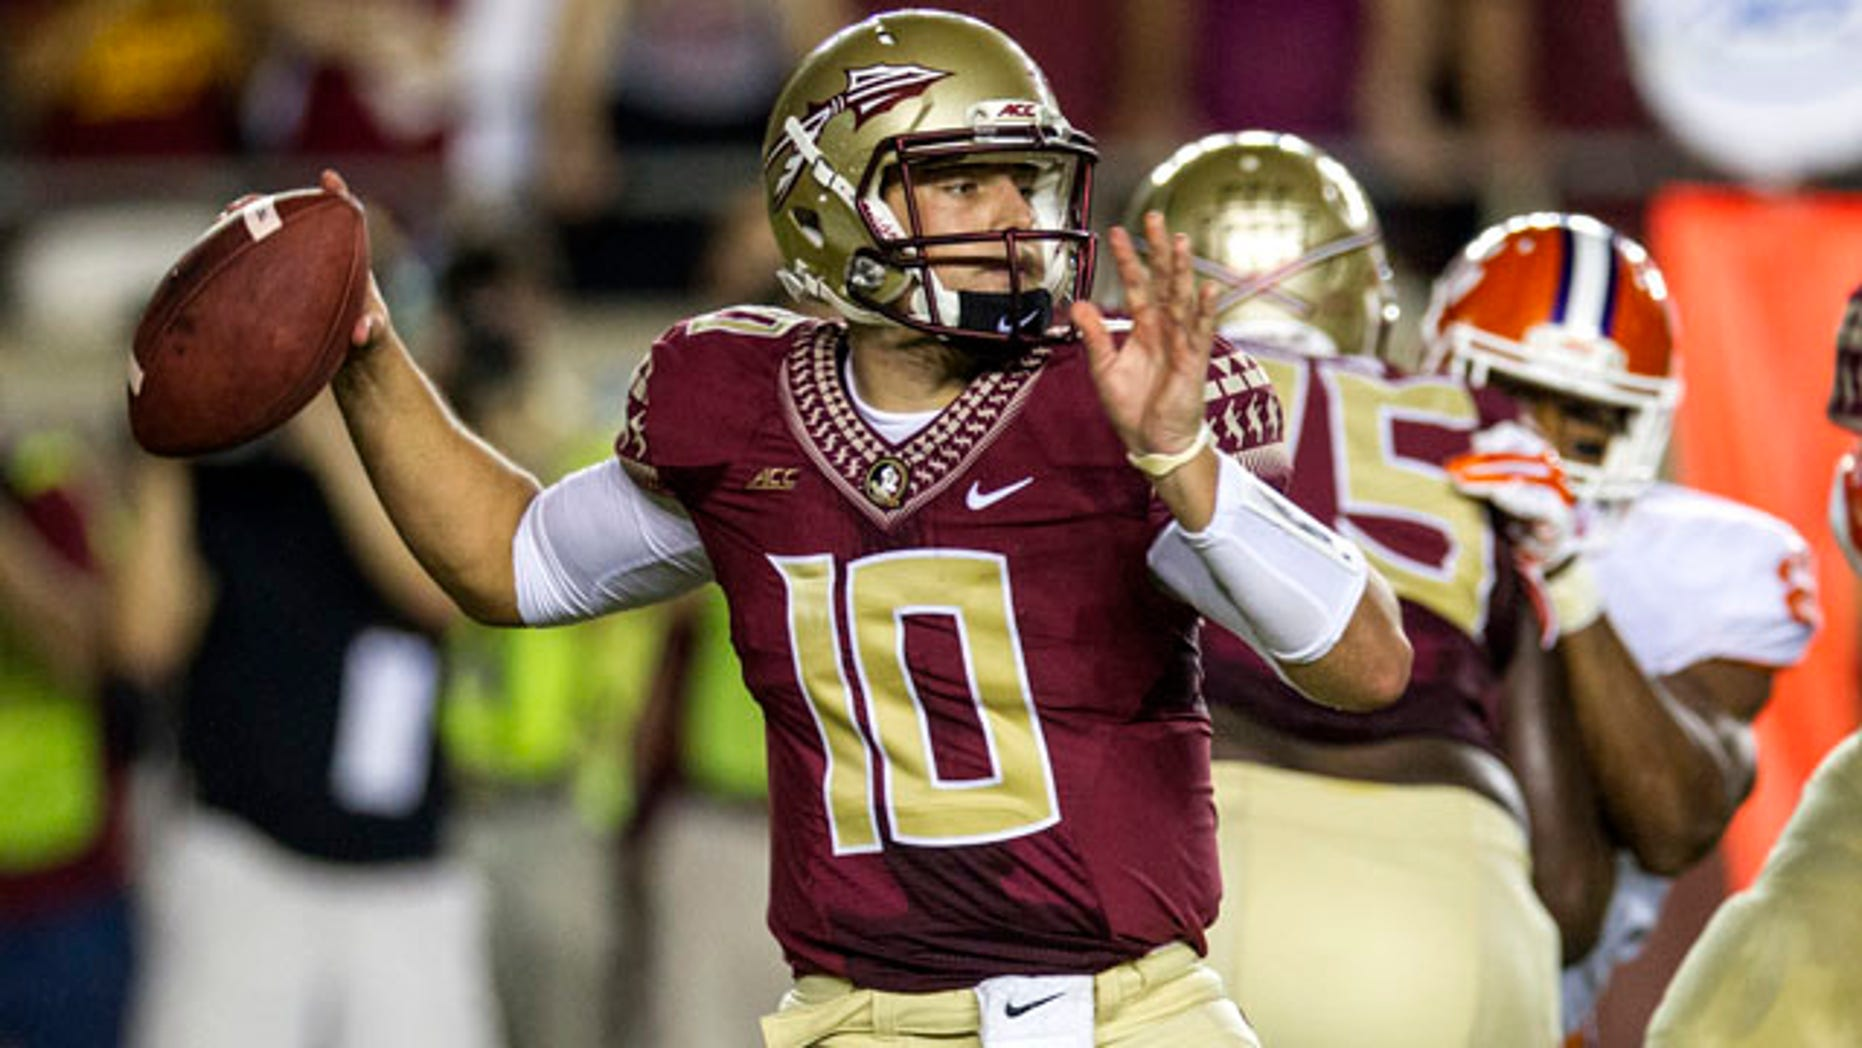 September 20, 2014: Florida State quarterback Sean Maquire throws a pass in the first half of an NCAA college football game against Clemson in Tallahassee, Fla. FSU quarterback Jameis Winston was suspended for the game. (AP Photo/Mark Wallheiser)